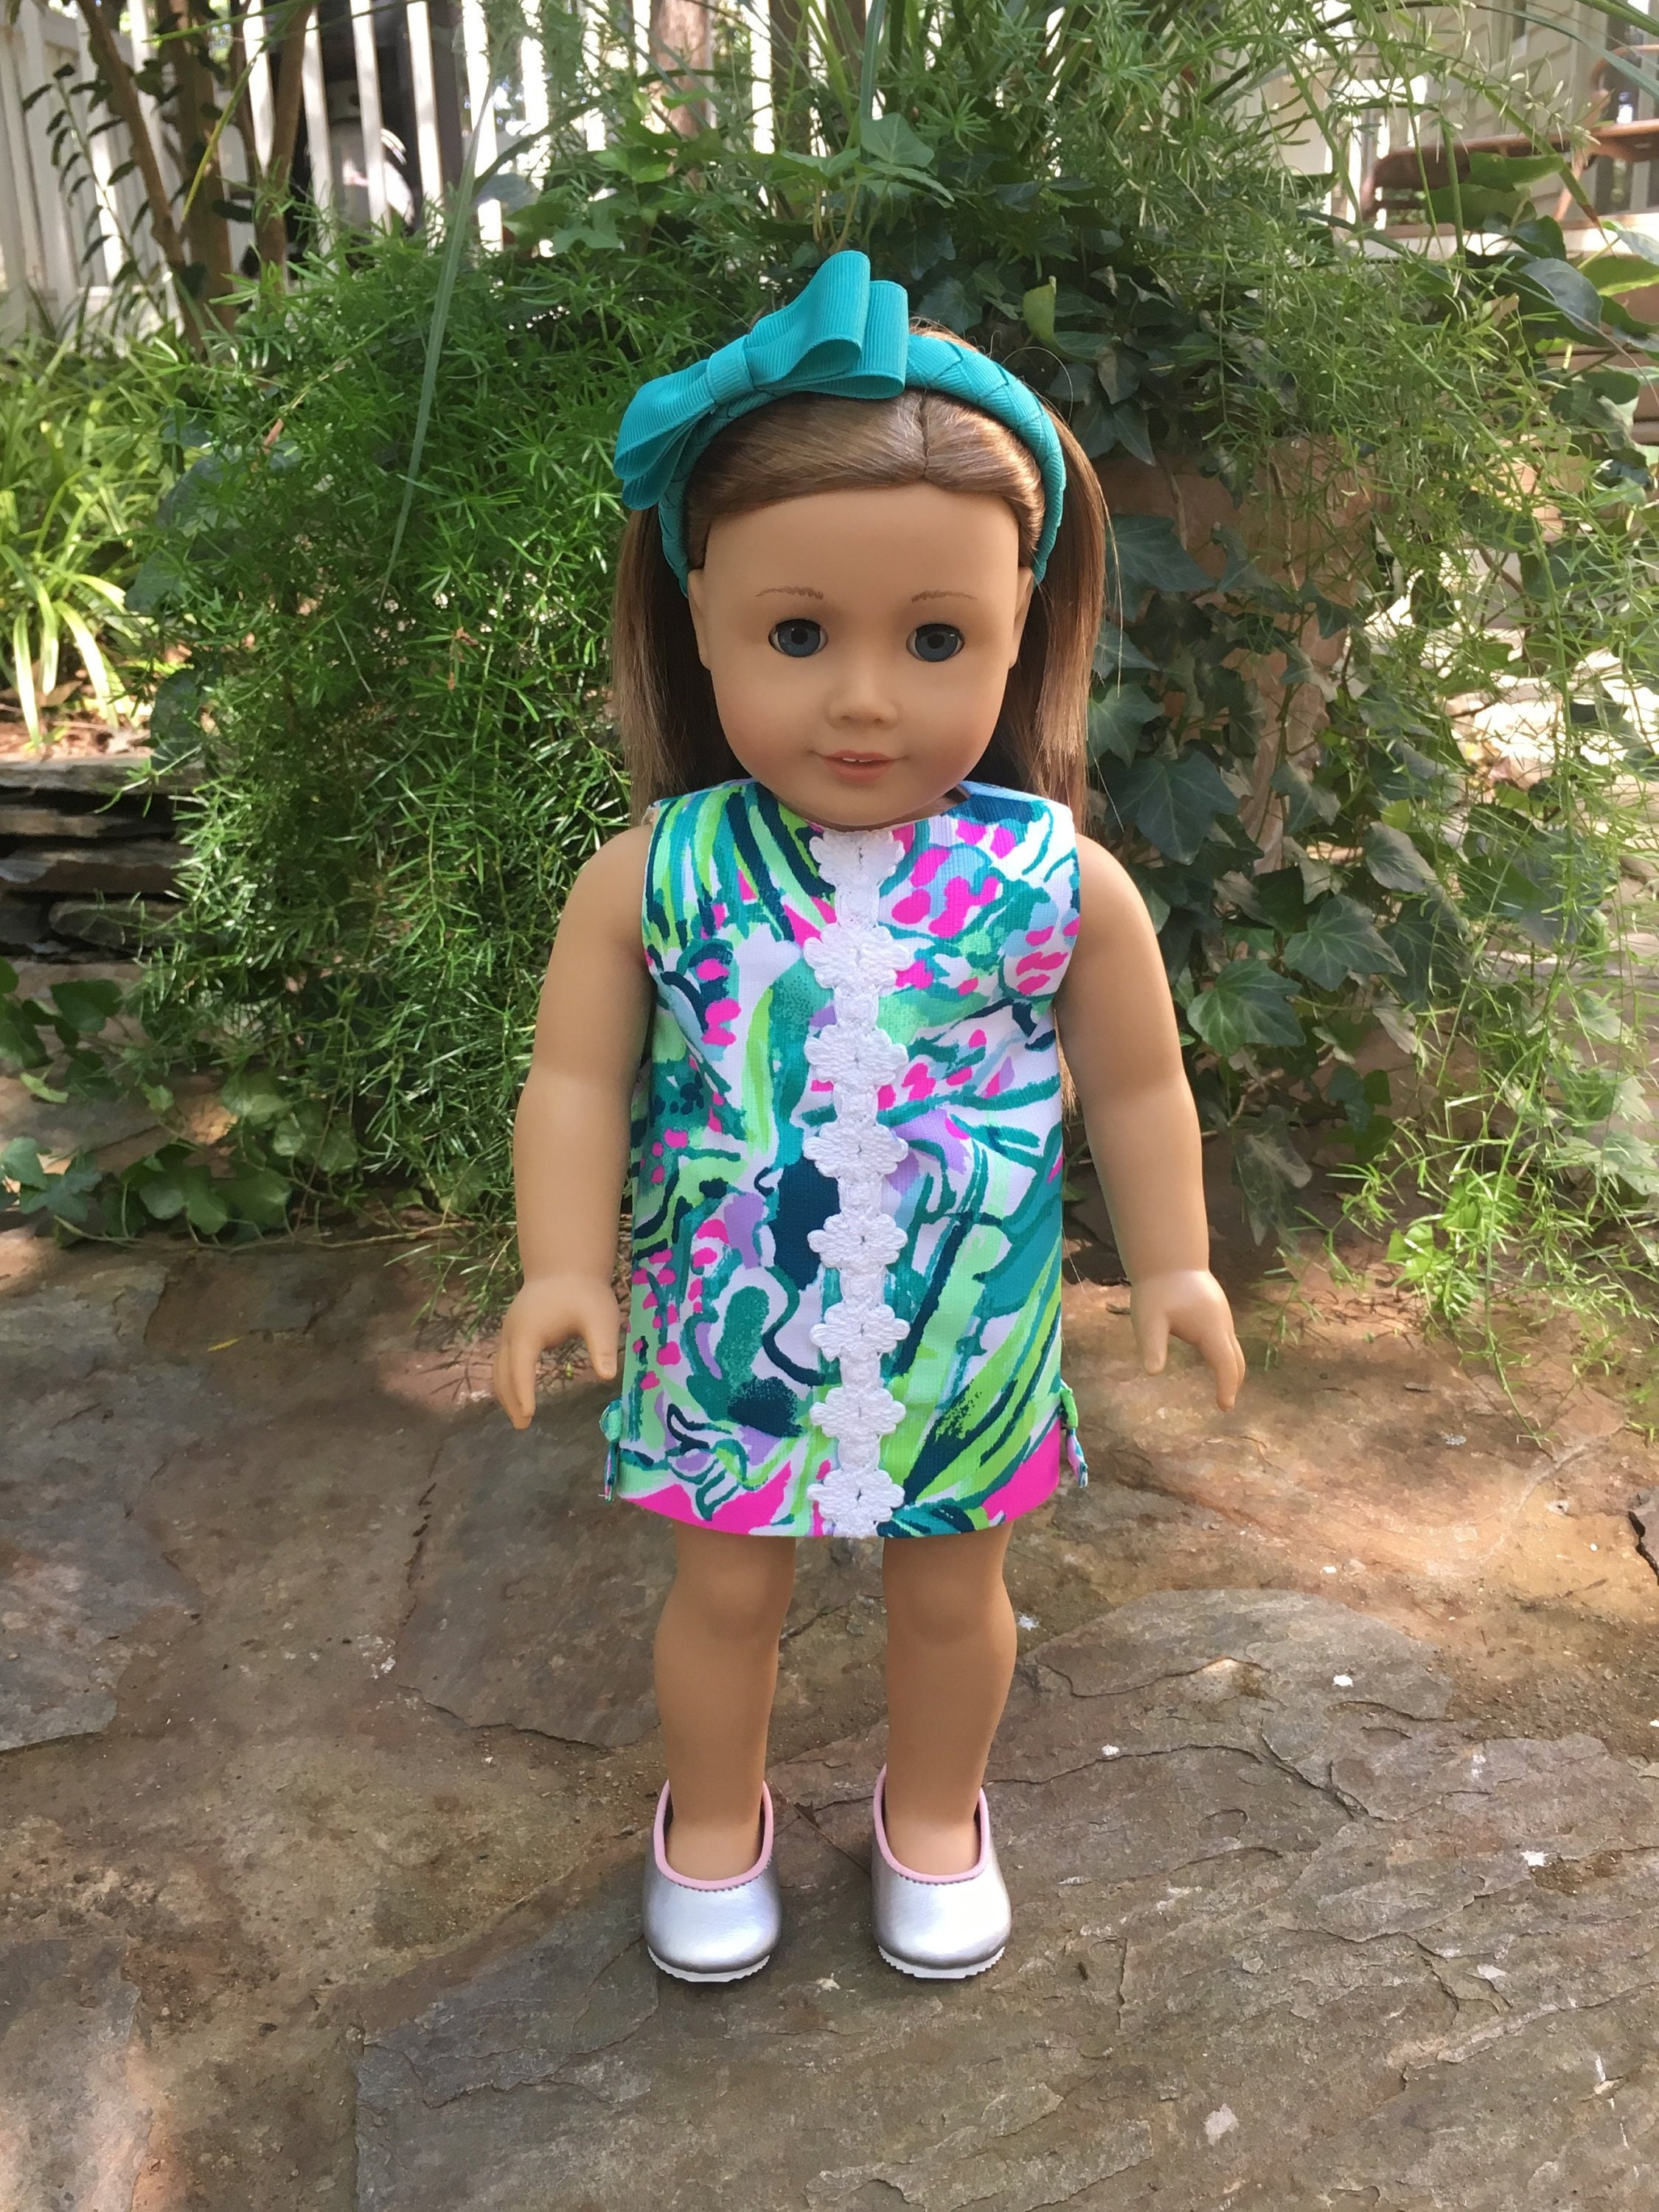 5828f382430 New lilly multi early bloomer american doll dress bitty etsy jpg 2250x3000 Early  bloomer